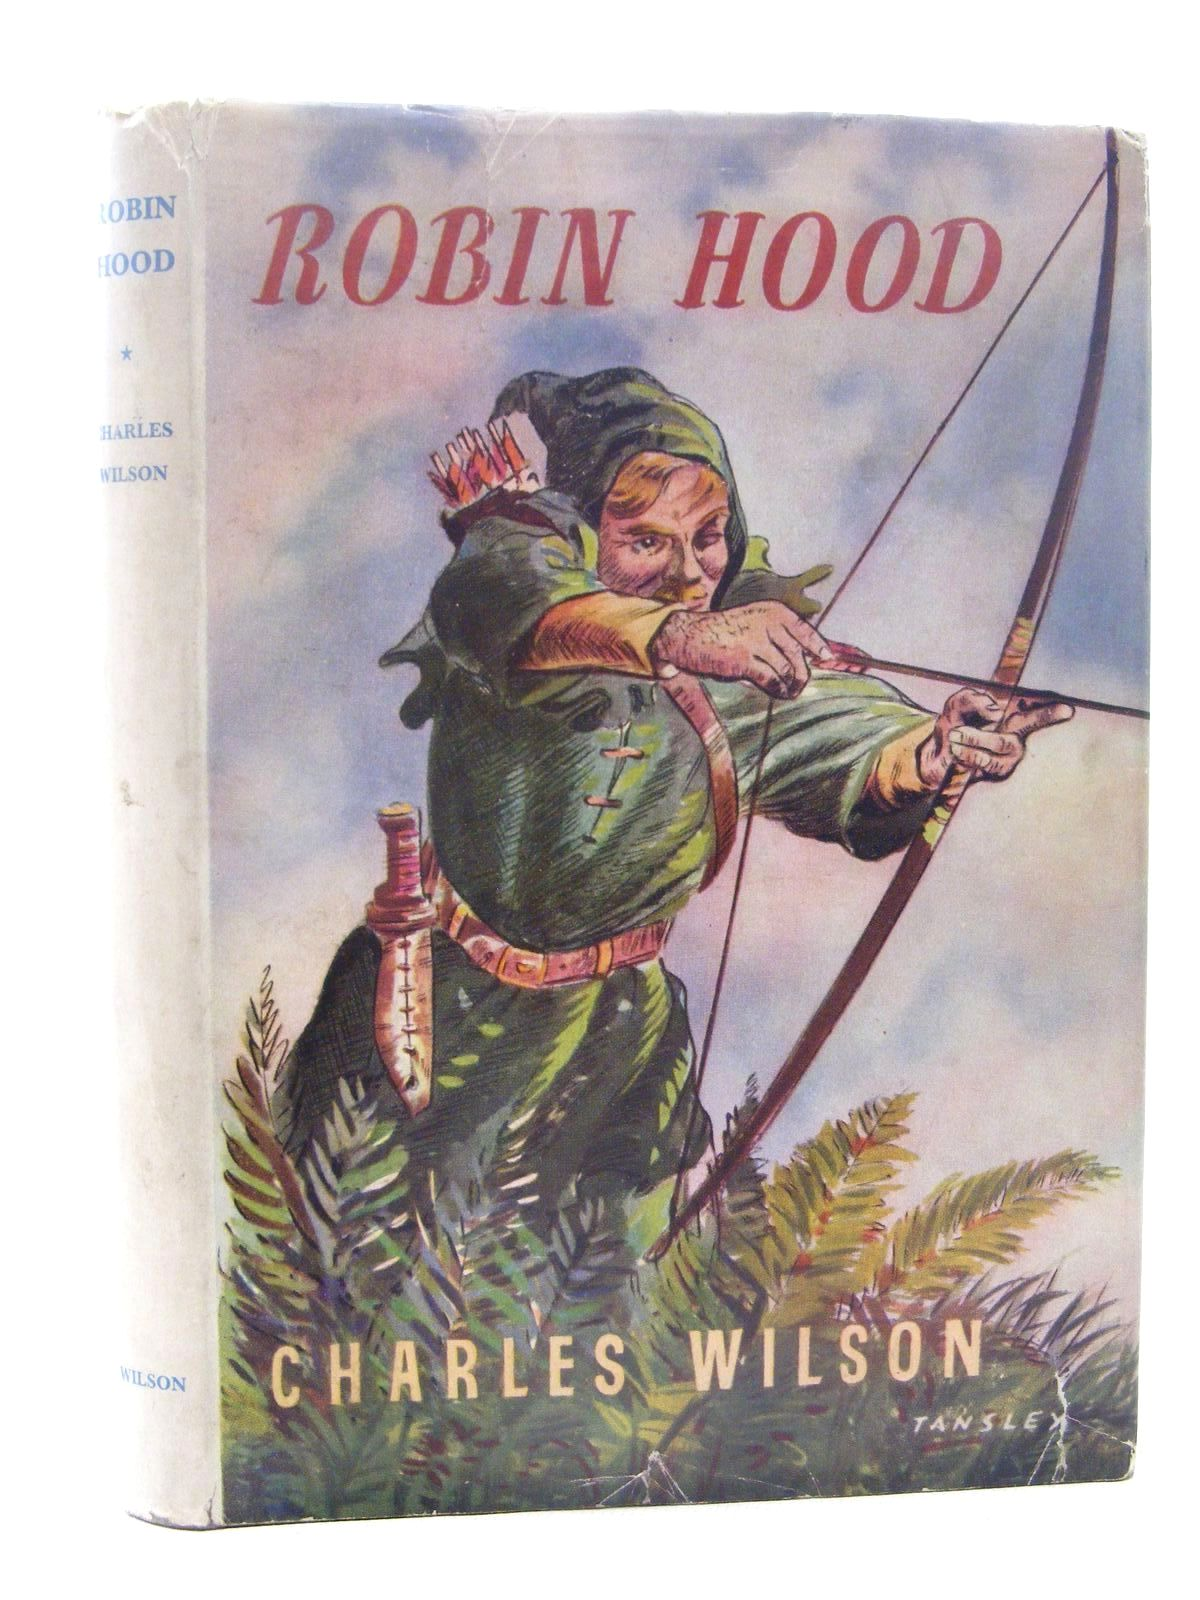 Photo of ROBIN HOOD HIS MERRY EXPLOITS written by Wilson, Charles published by Charles Wilson (booksellers) Limited (STOCK CODE: 1815952)  for sale by Stella & Rose's Books